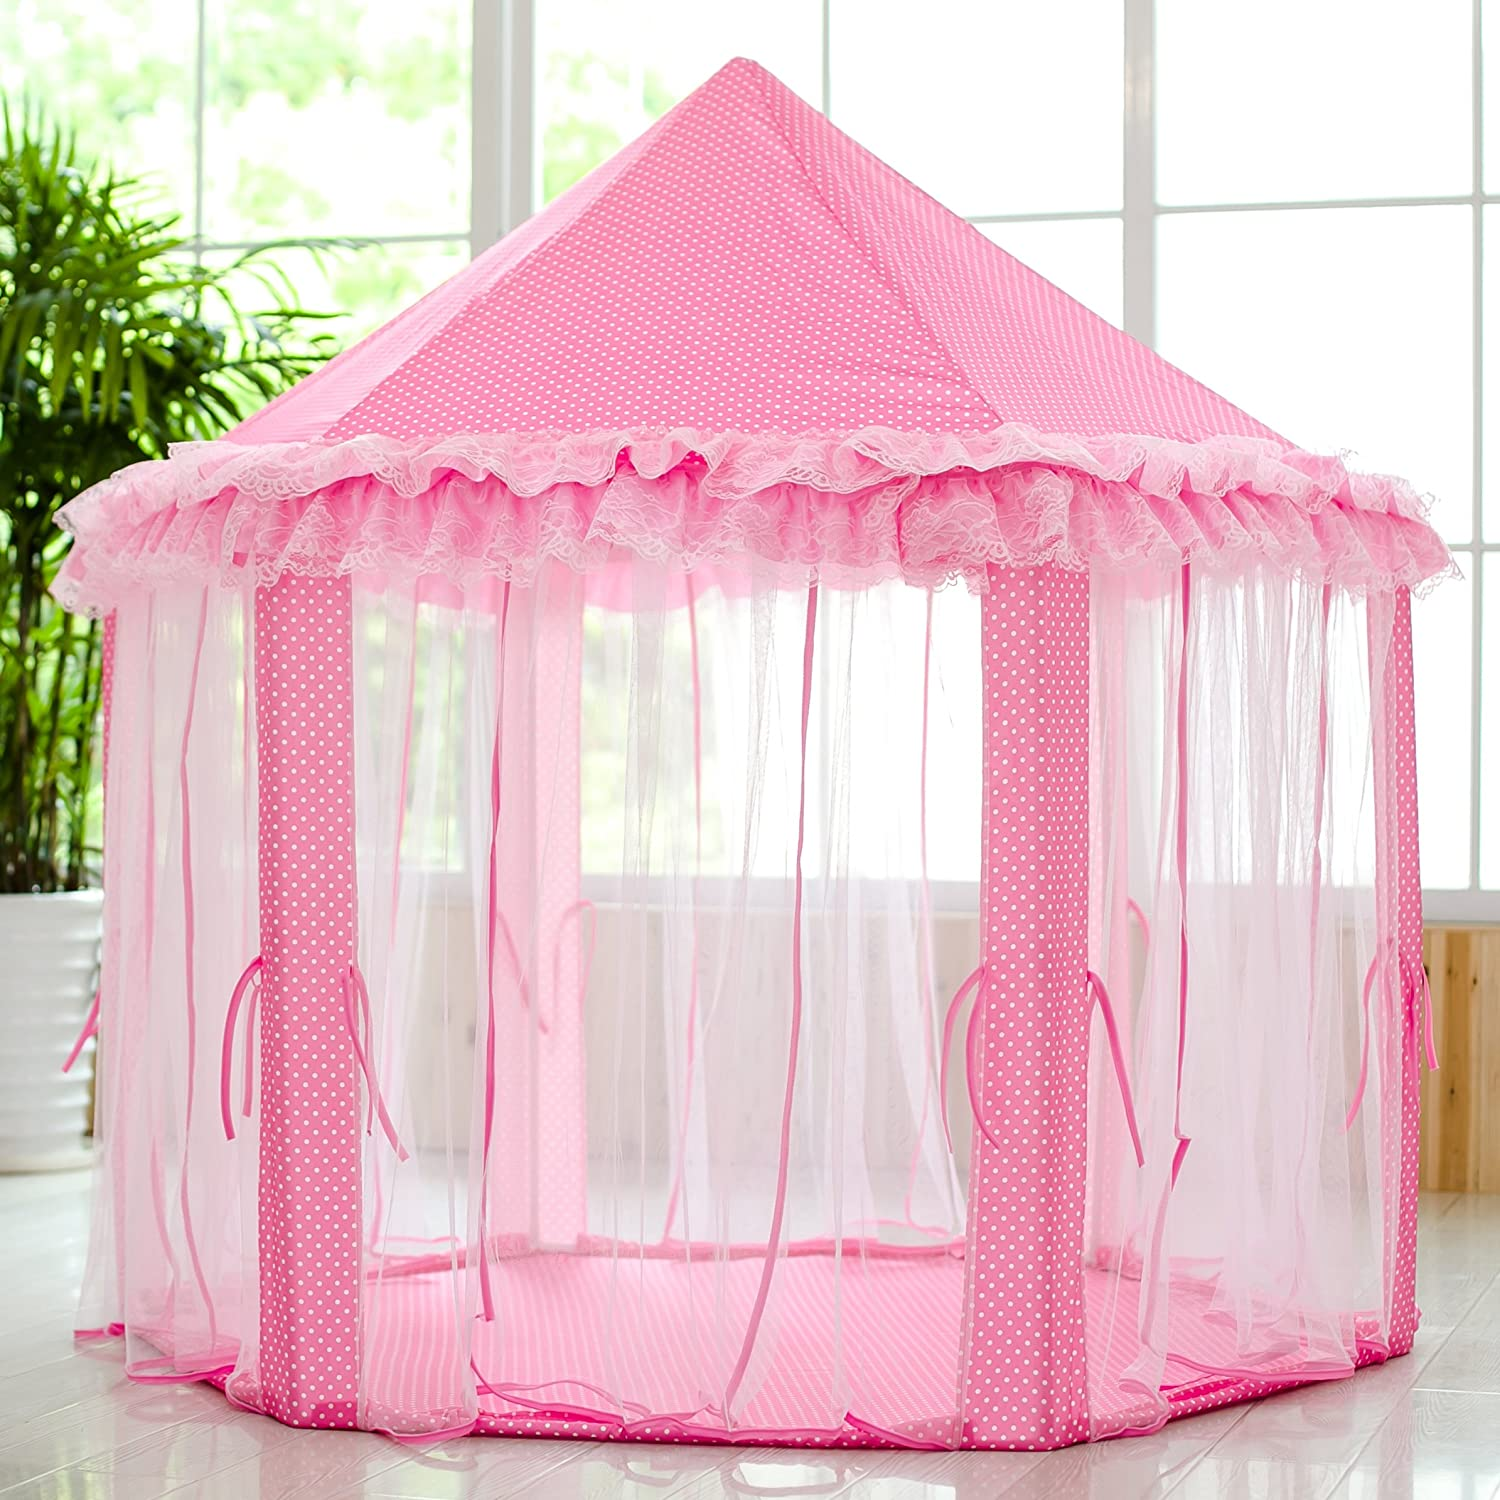 Amazon.com: SkyeyArc Princess Tent With Metal Frame, Princess Castle ...